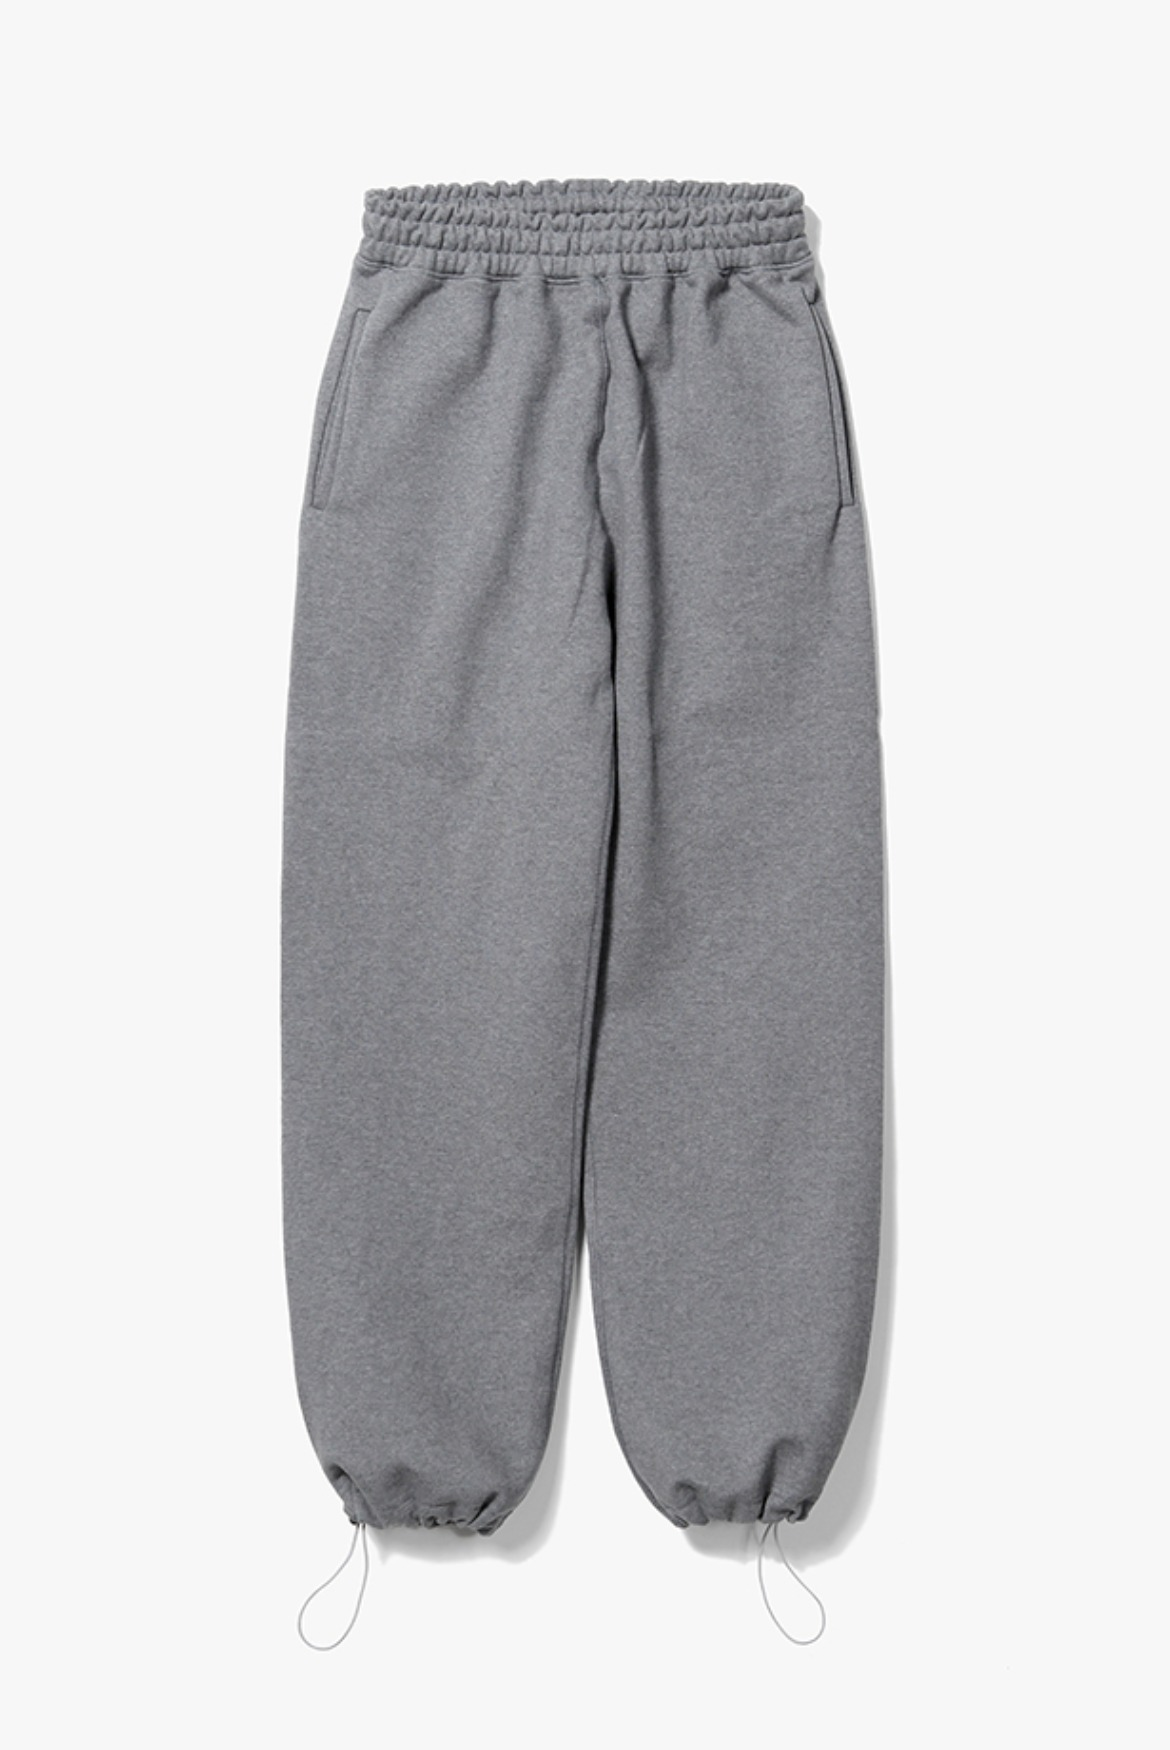 Classic String Sweat Pants [Charcoal]